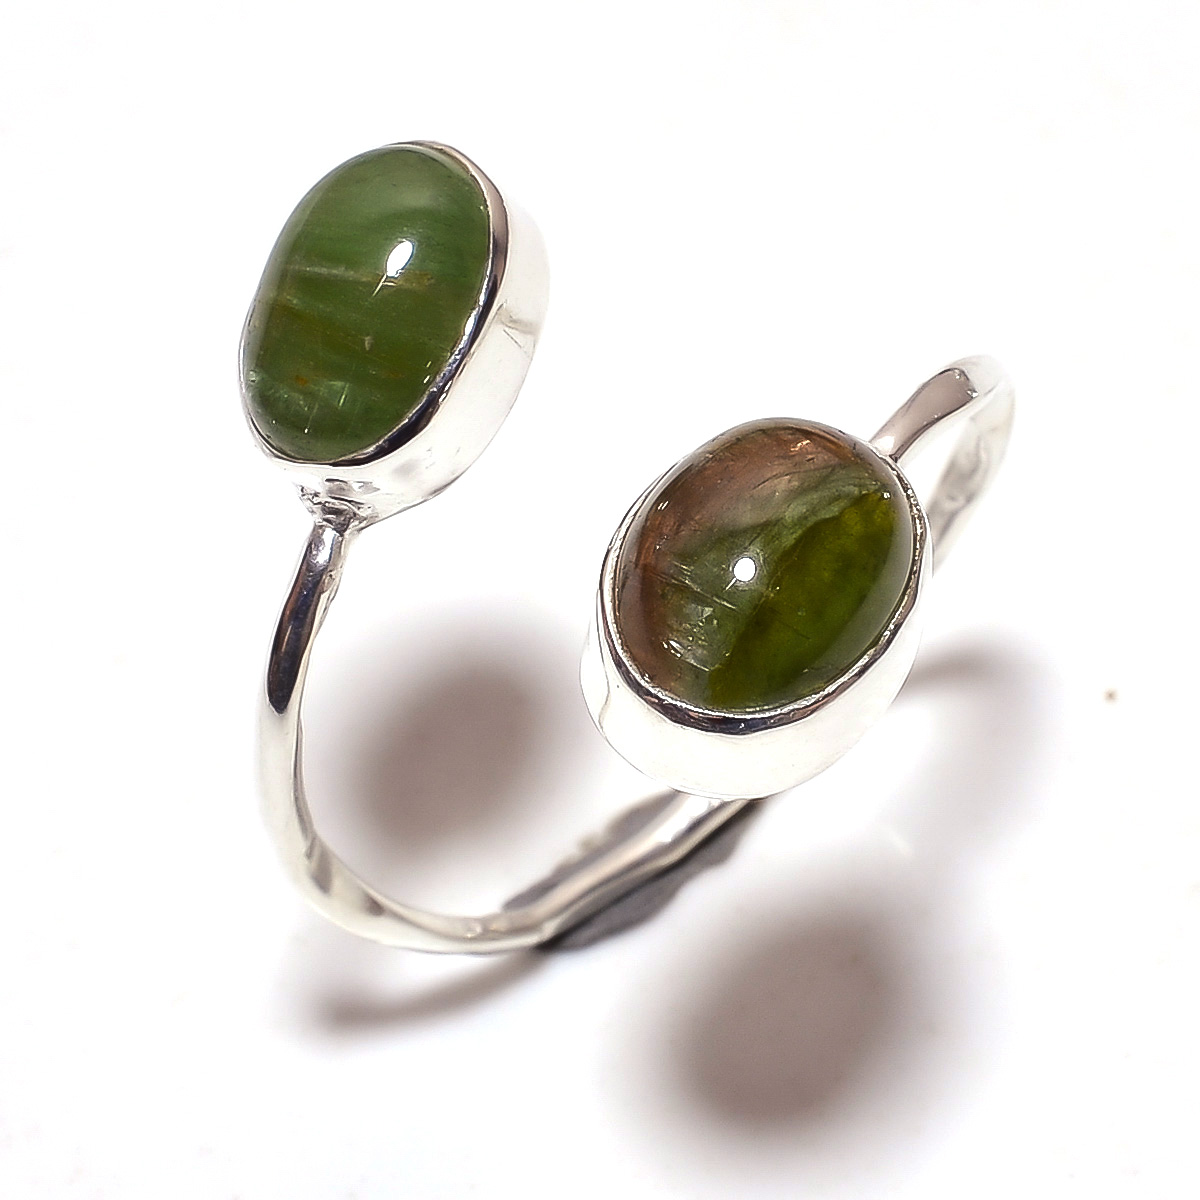 Multi Tourmaline Gemstone 925 Sterling Silver Ring Size 9.75 Adjustable